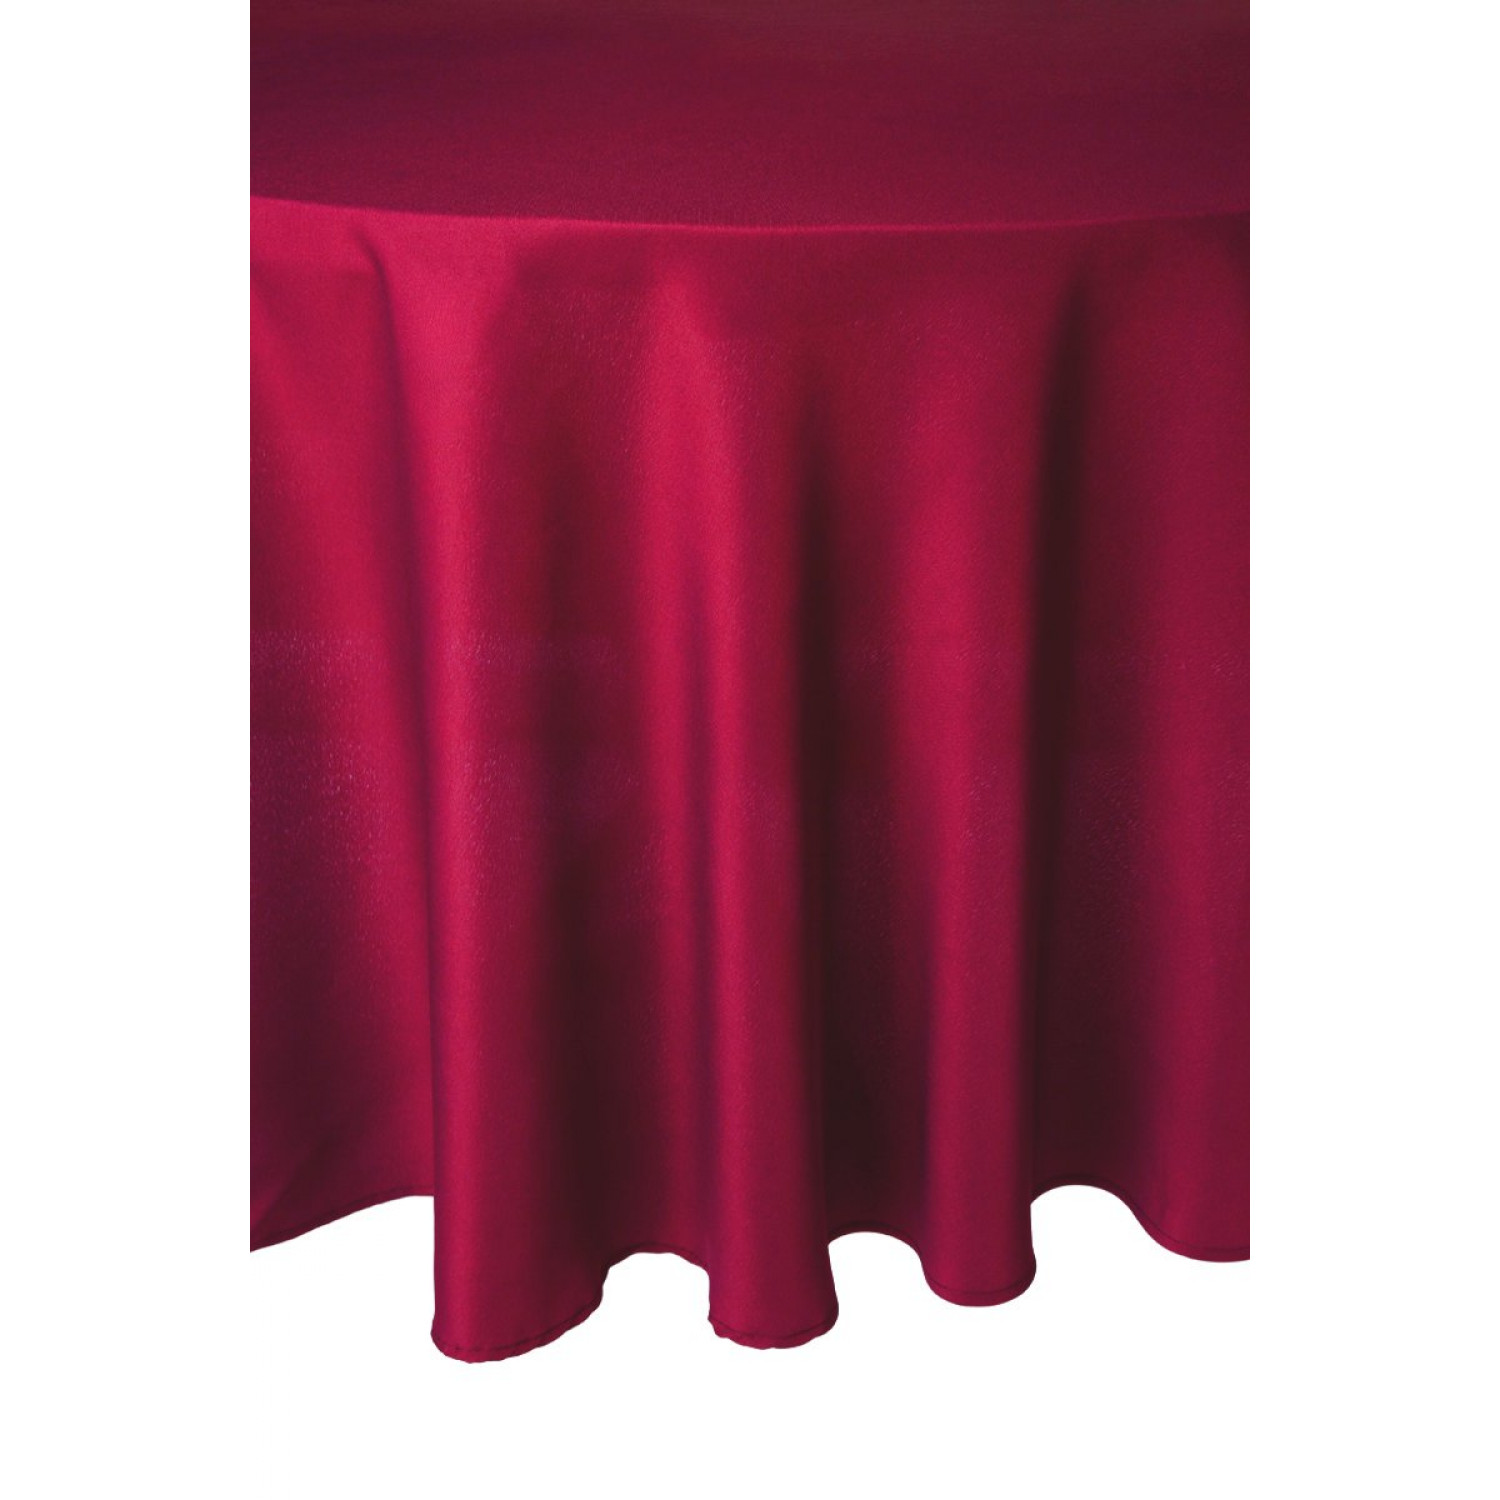 Nappe ronde - Anti tâches- 180cm - Framboise - Polyester